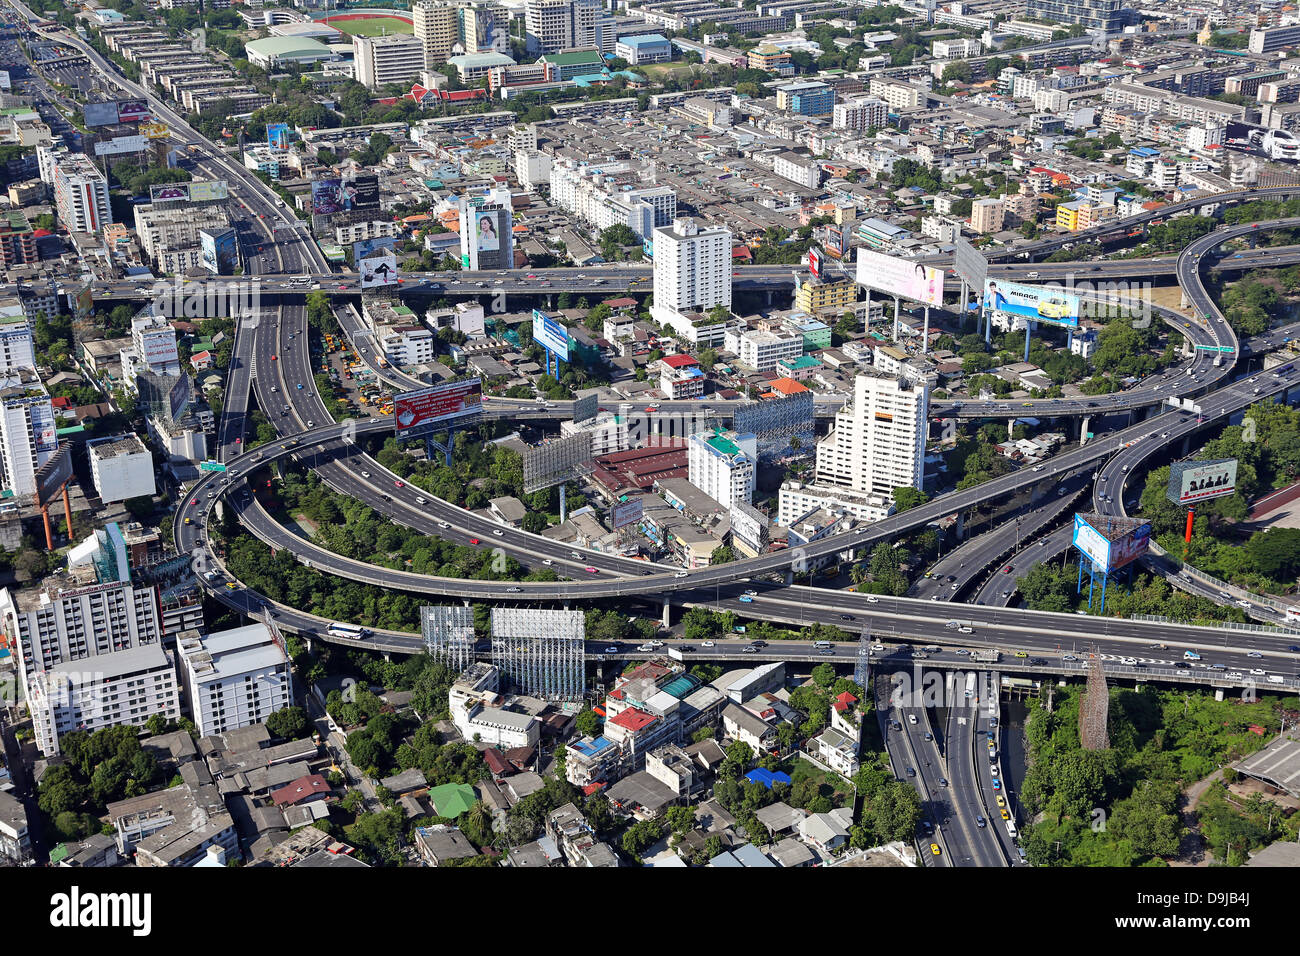 Aerial general view of buildings on the skyline in Bangkok, Thailand - Stock Image